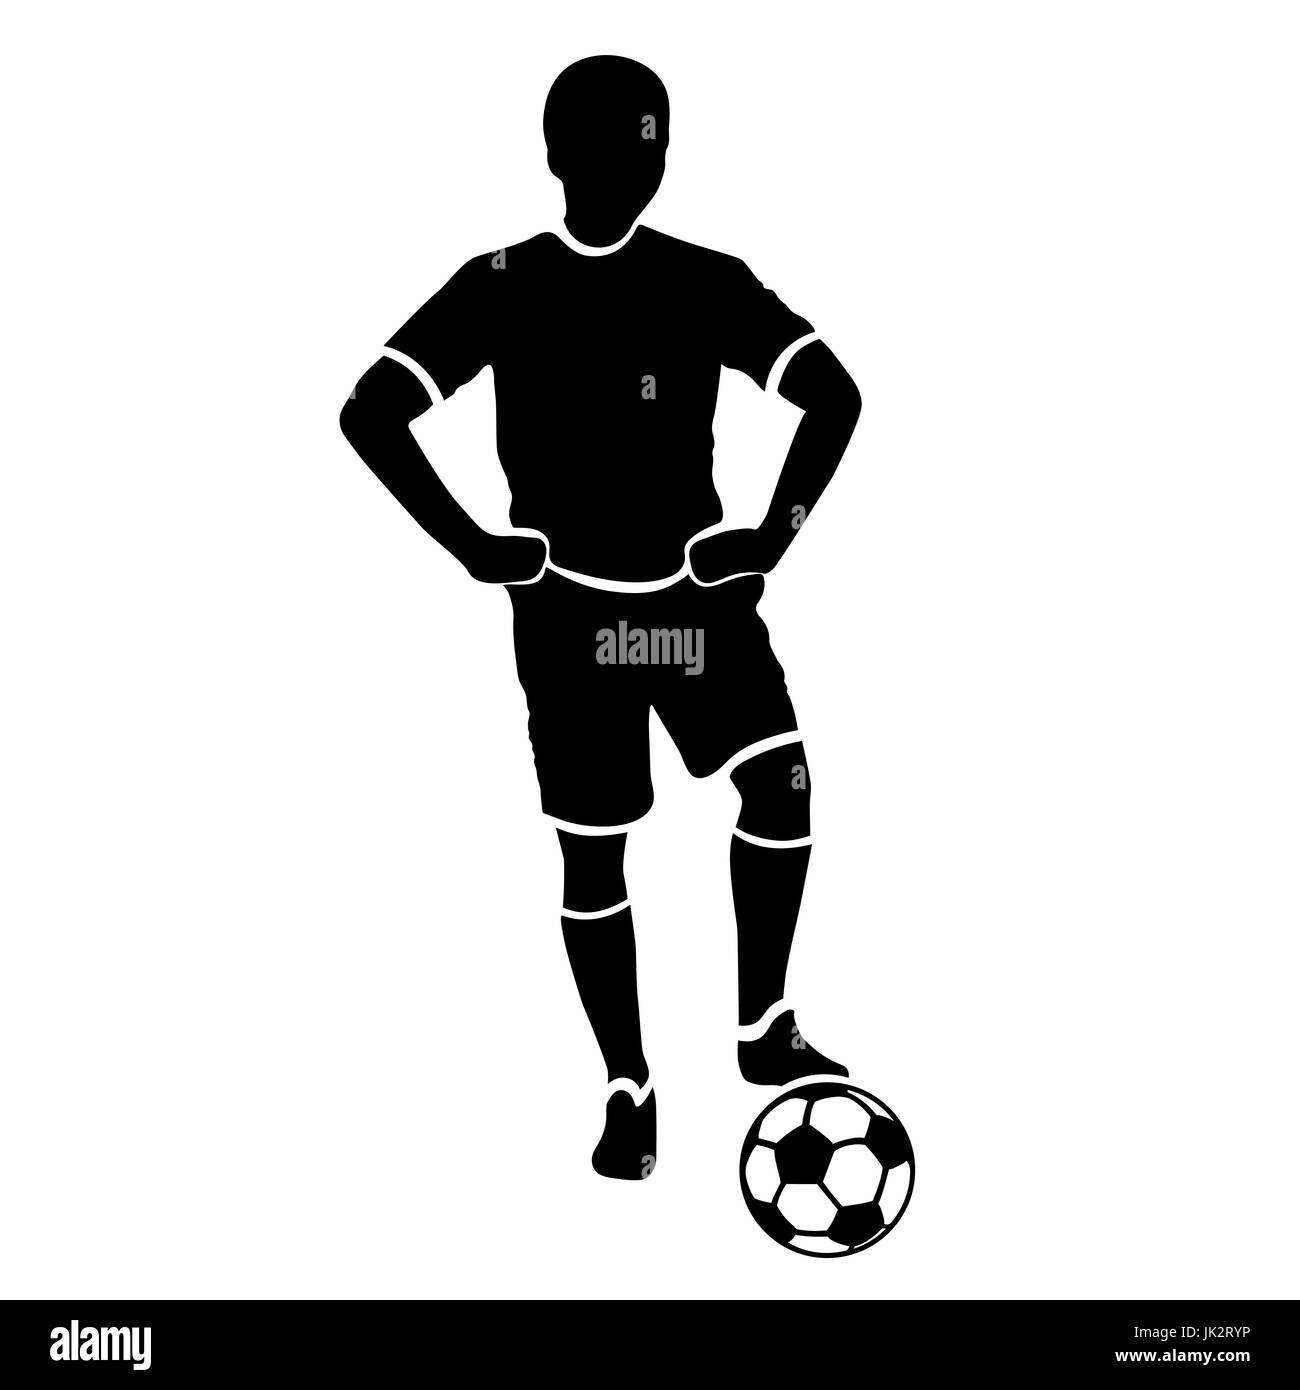 Footballer silhouette. Black football player outline with a ball, isolated on white background - Stock Vector